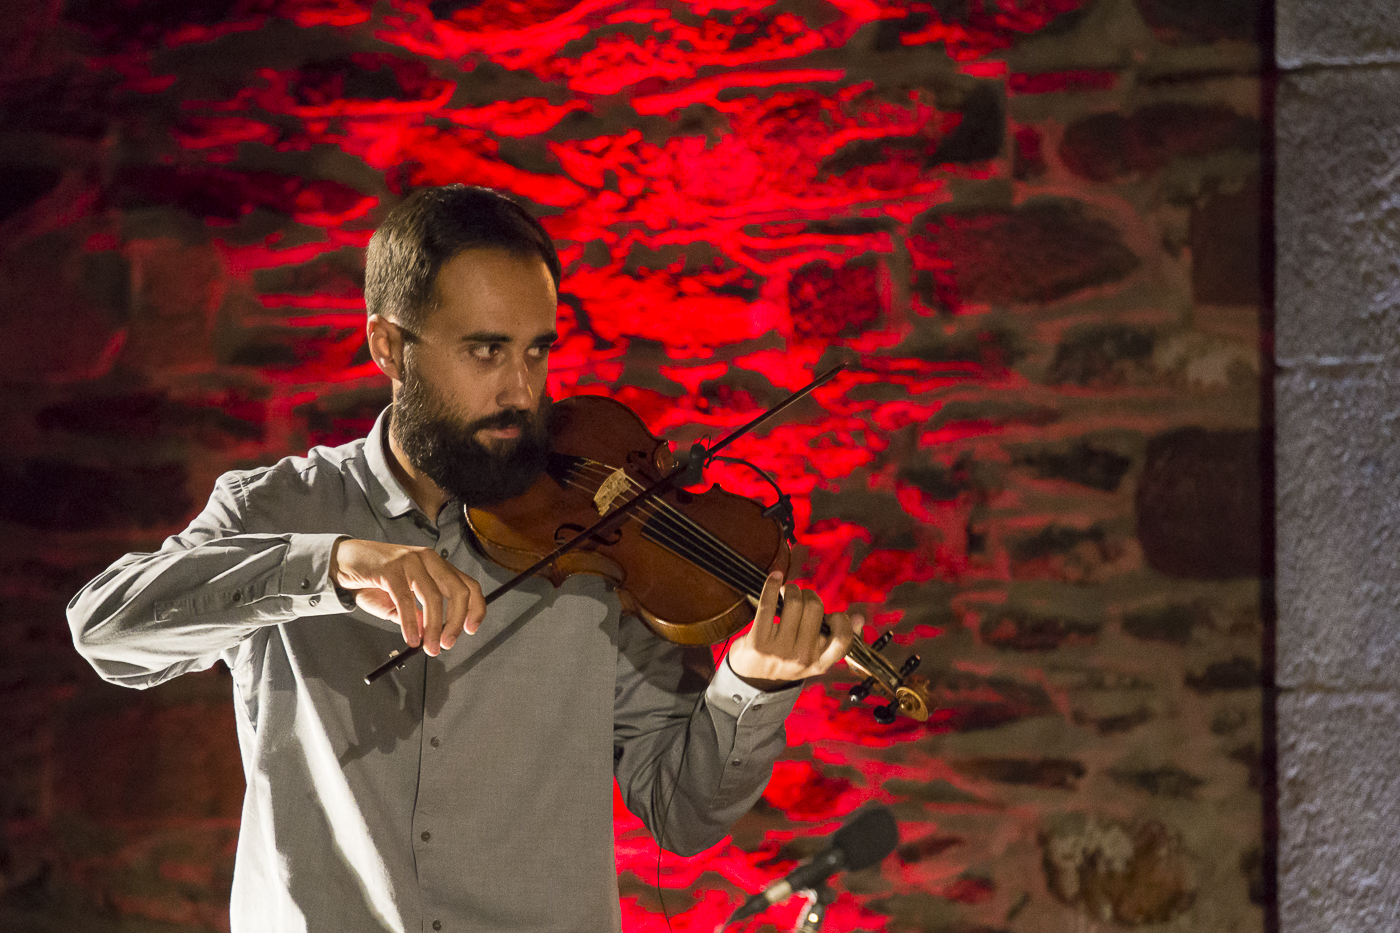 Alix Boivert au violon baroque, By moonlight on the green, The Curious Bards, Conques, Aveyron, 2020 ©George Berte